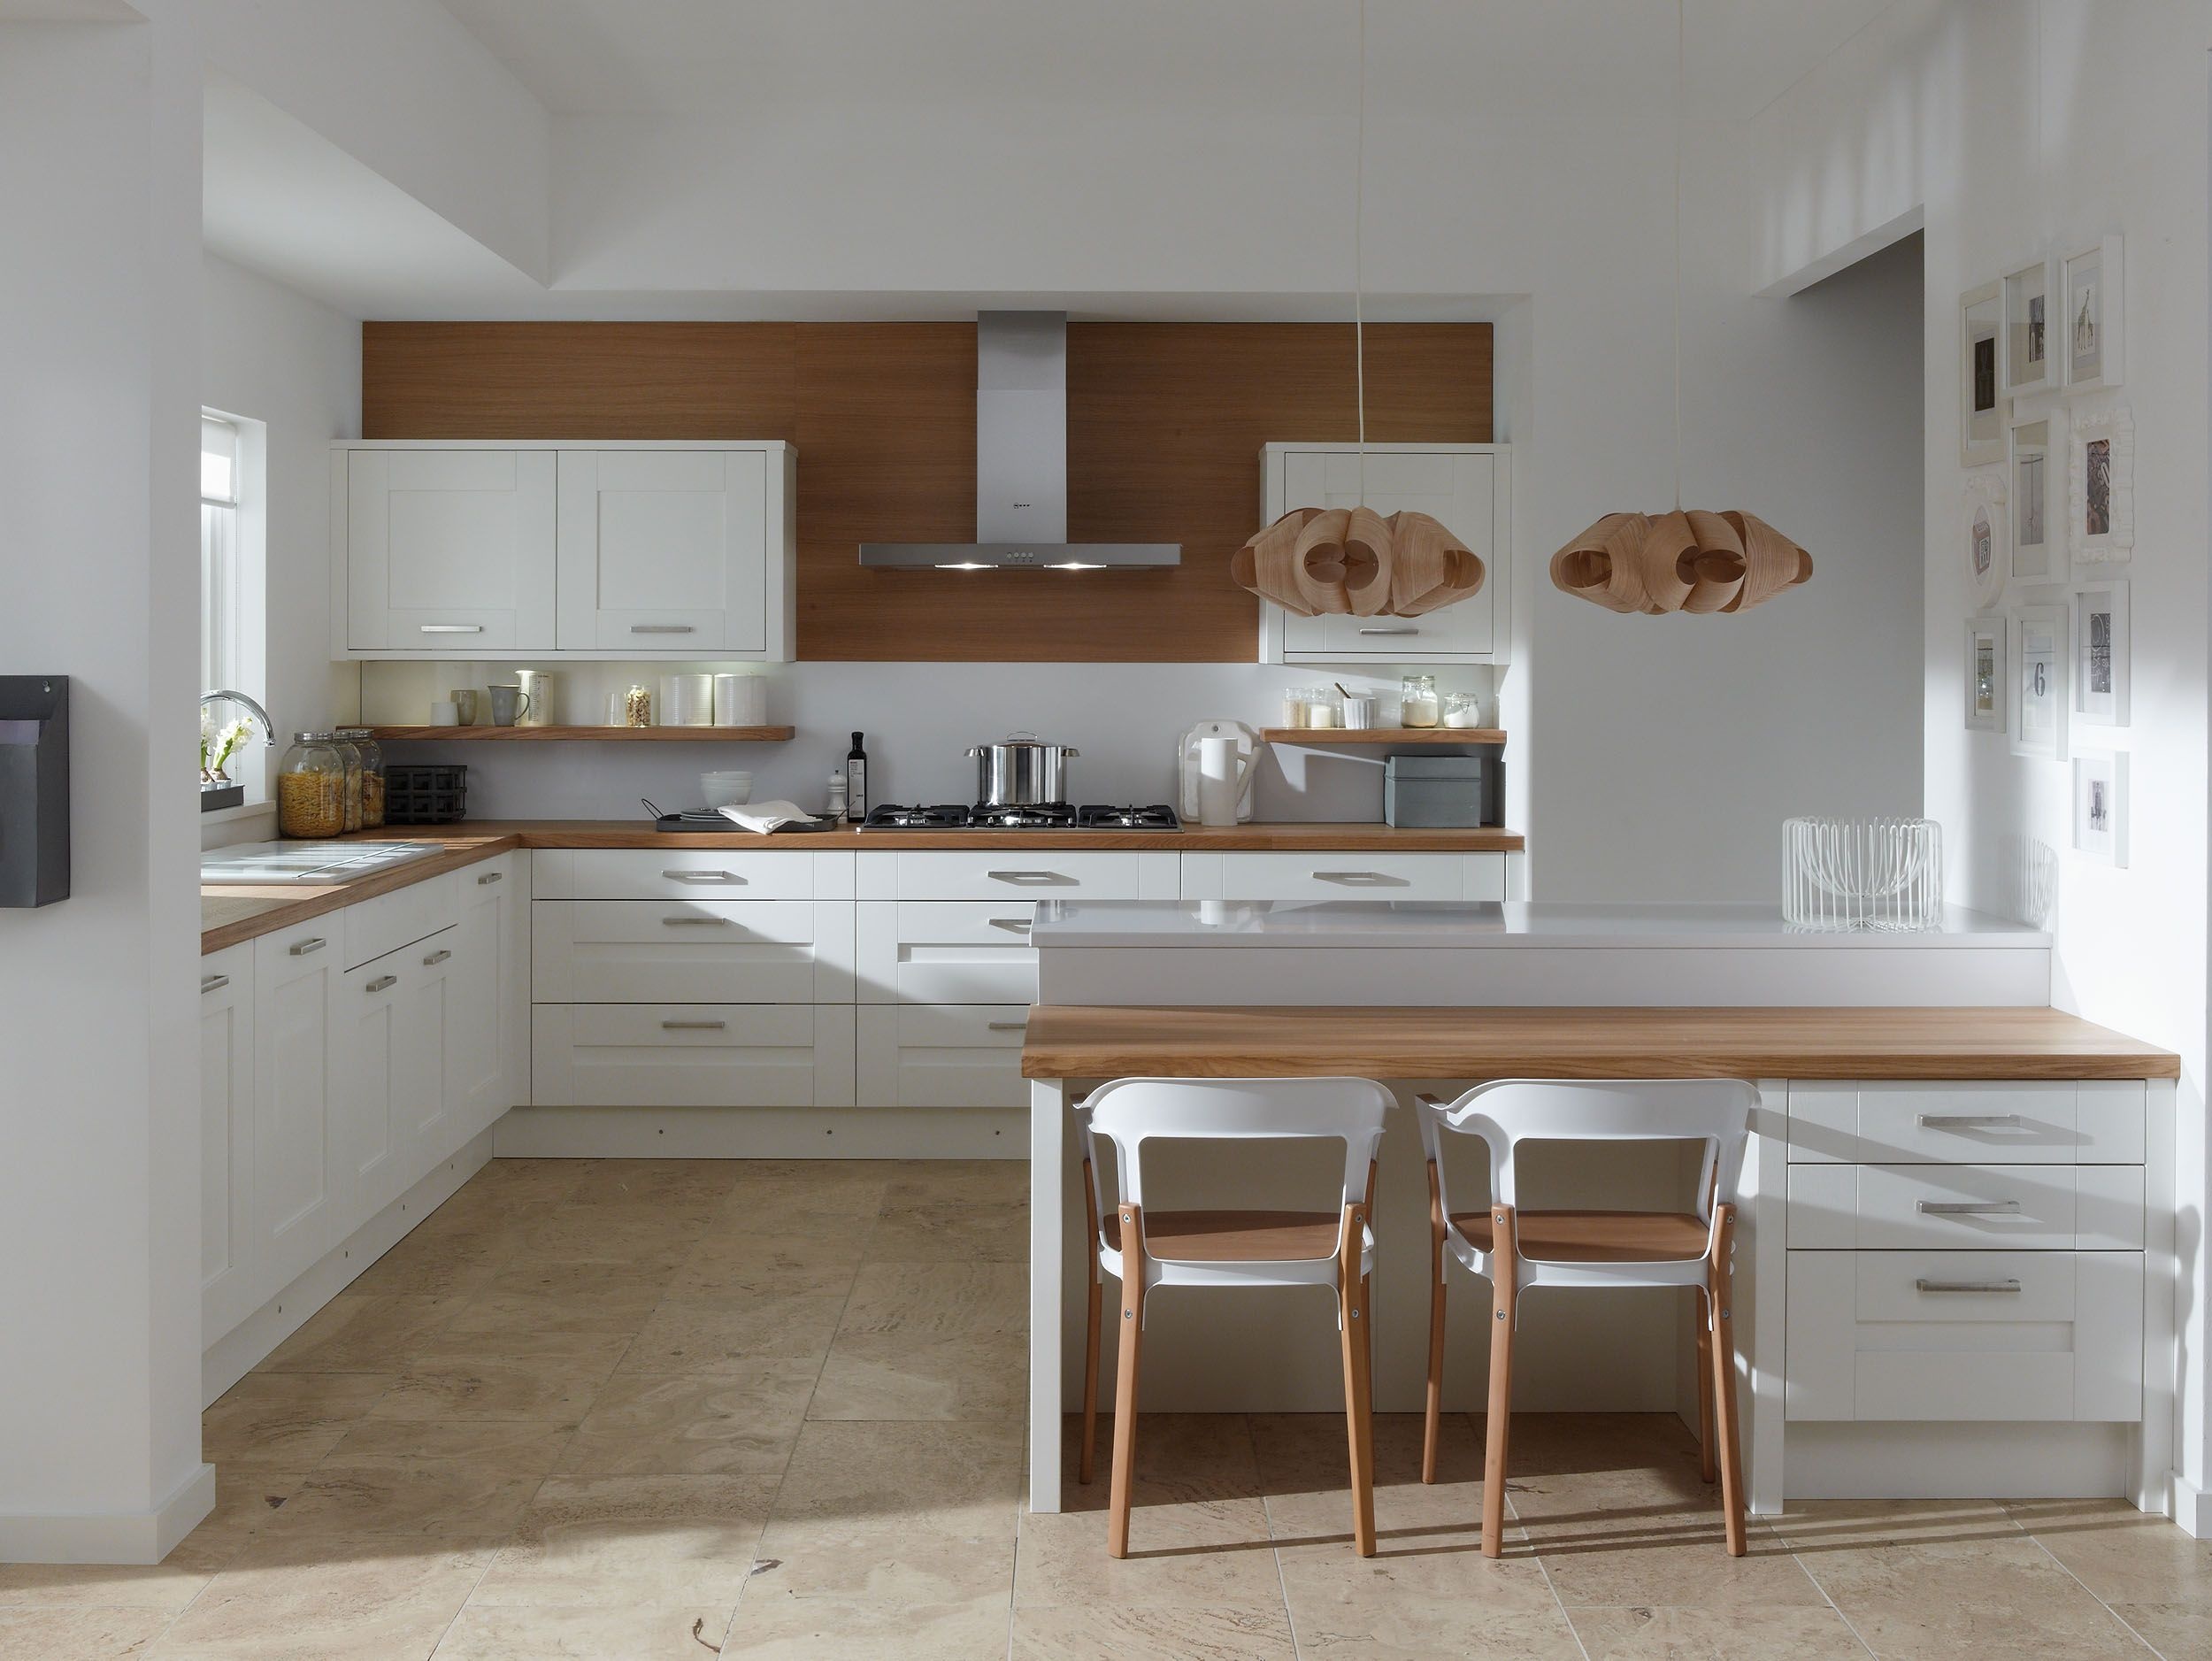 design a kitchen 5 Things to Do Before Starting A Kitchen Design Project